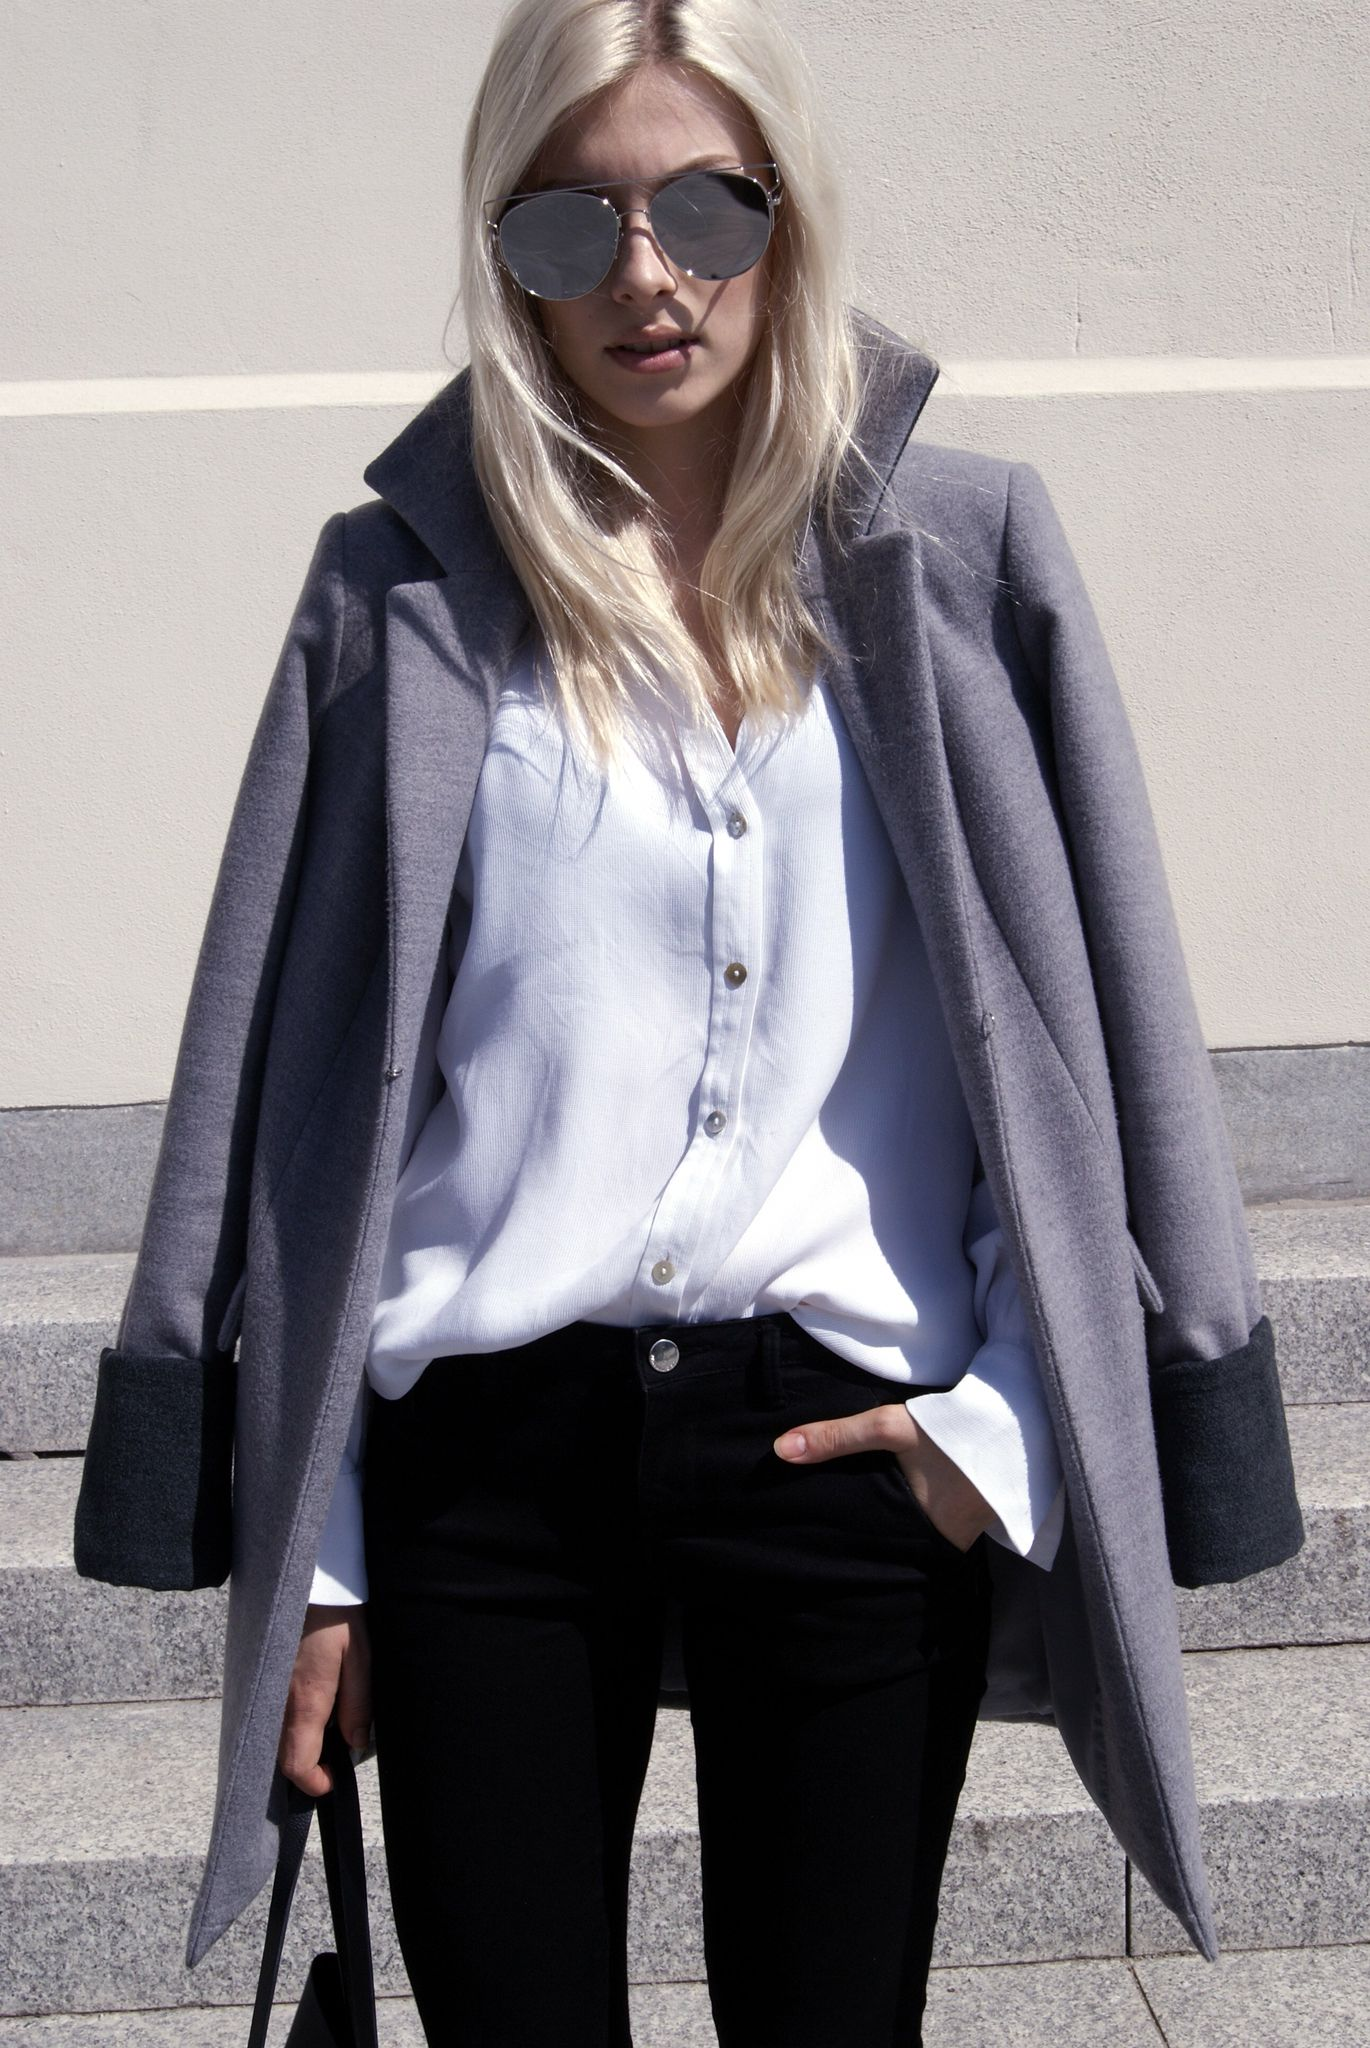 #coat #grey #black #trousers #sunglasses #white #hair #boots #jgprestige #ss16 #collection #outfit #blog #blogger #look #fashion #street #style #biznes #woman #sun #blond #hair #bag #boots #architecture